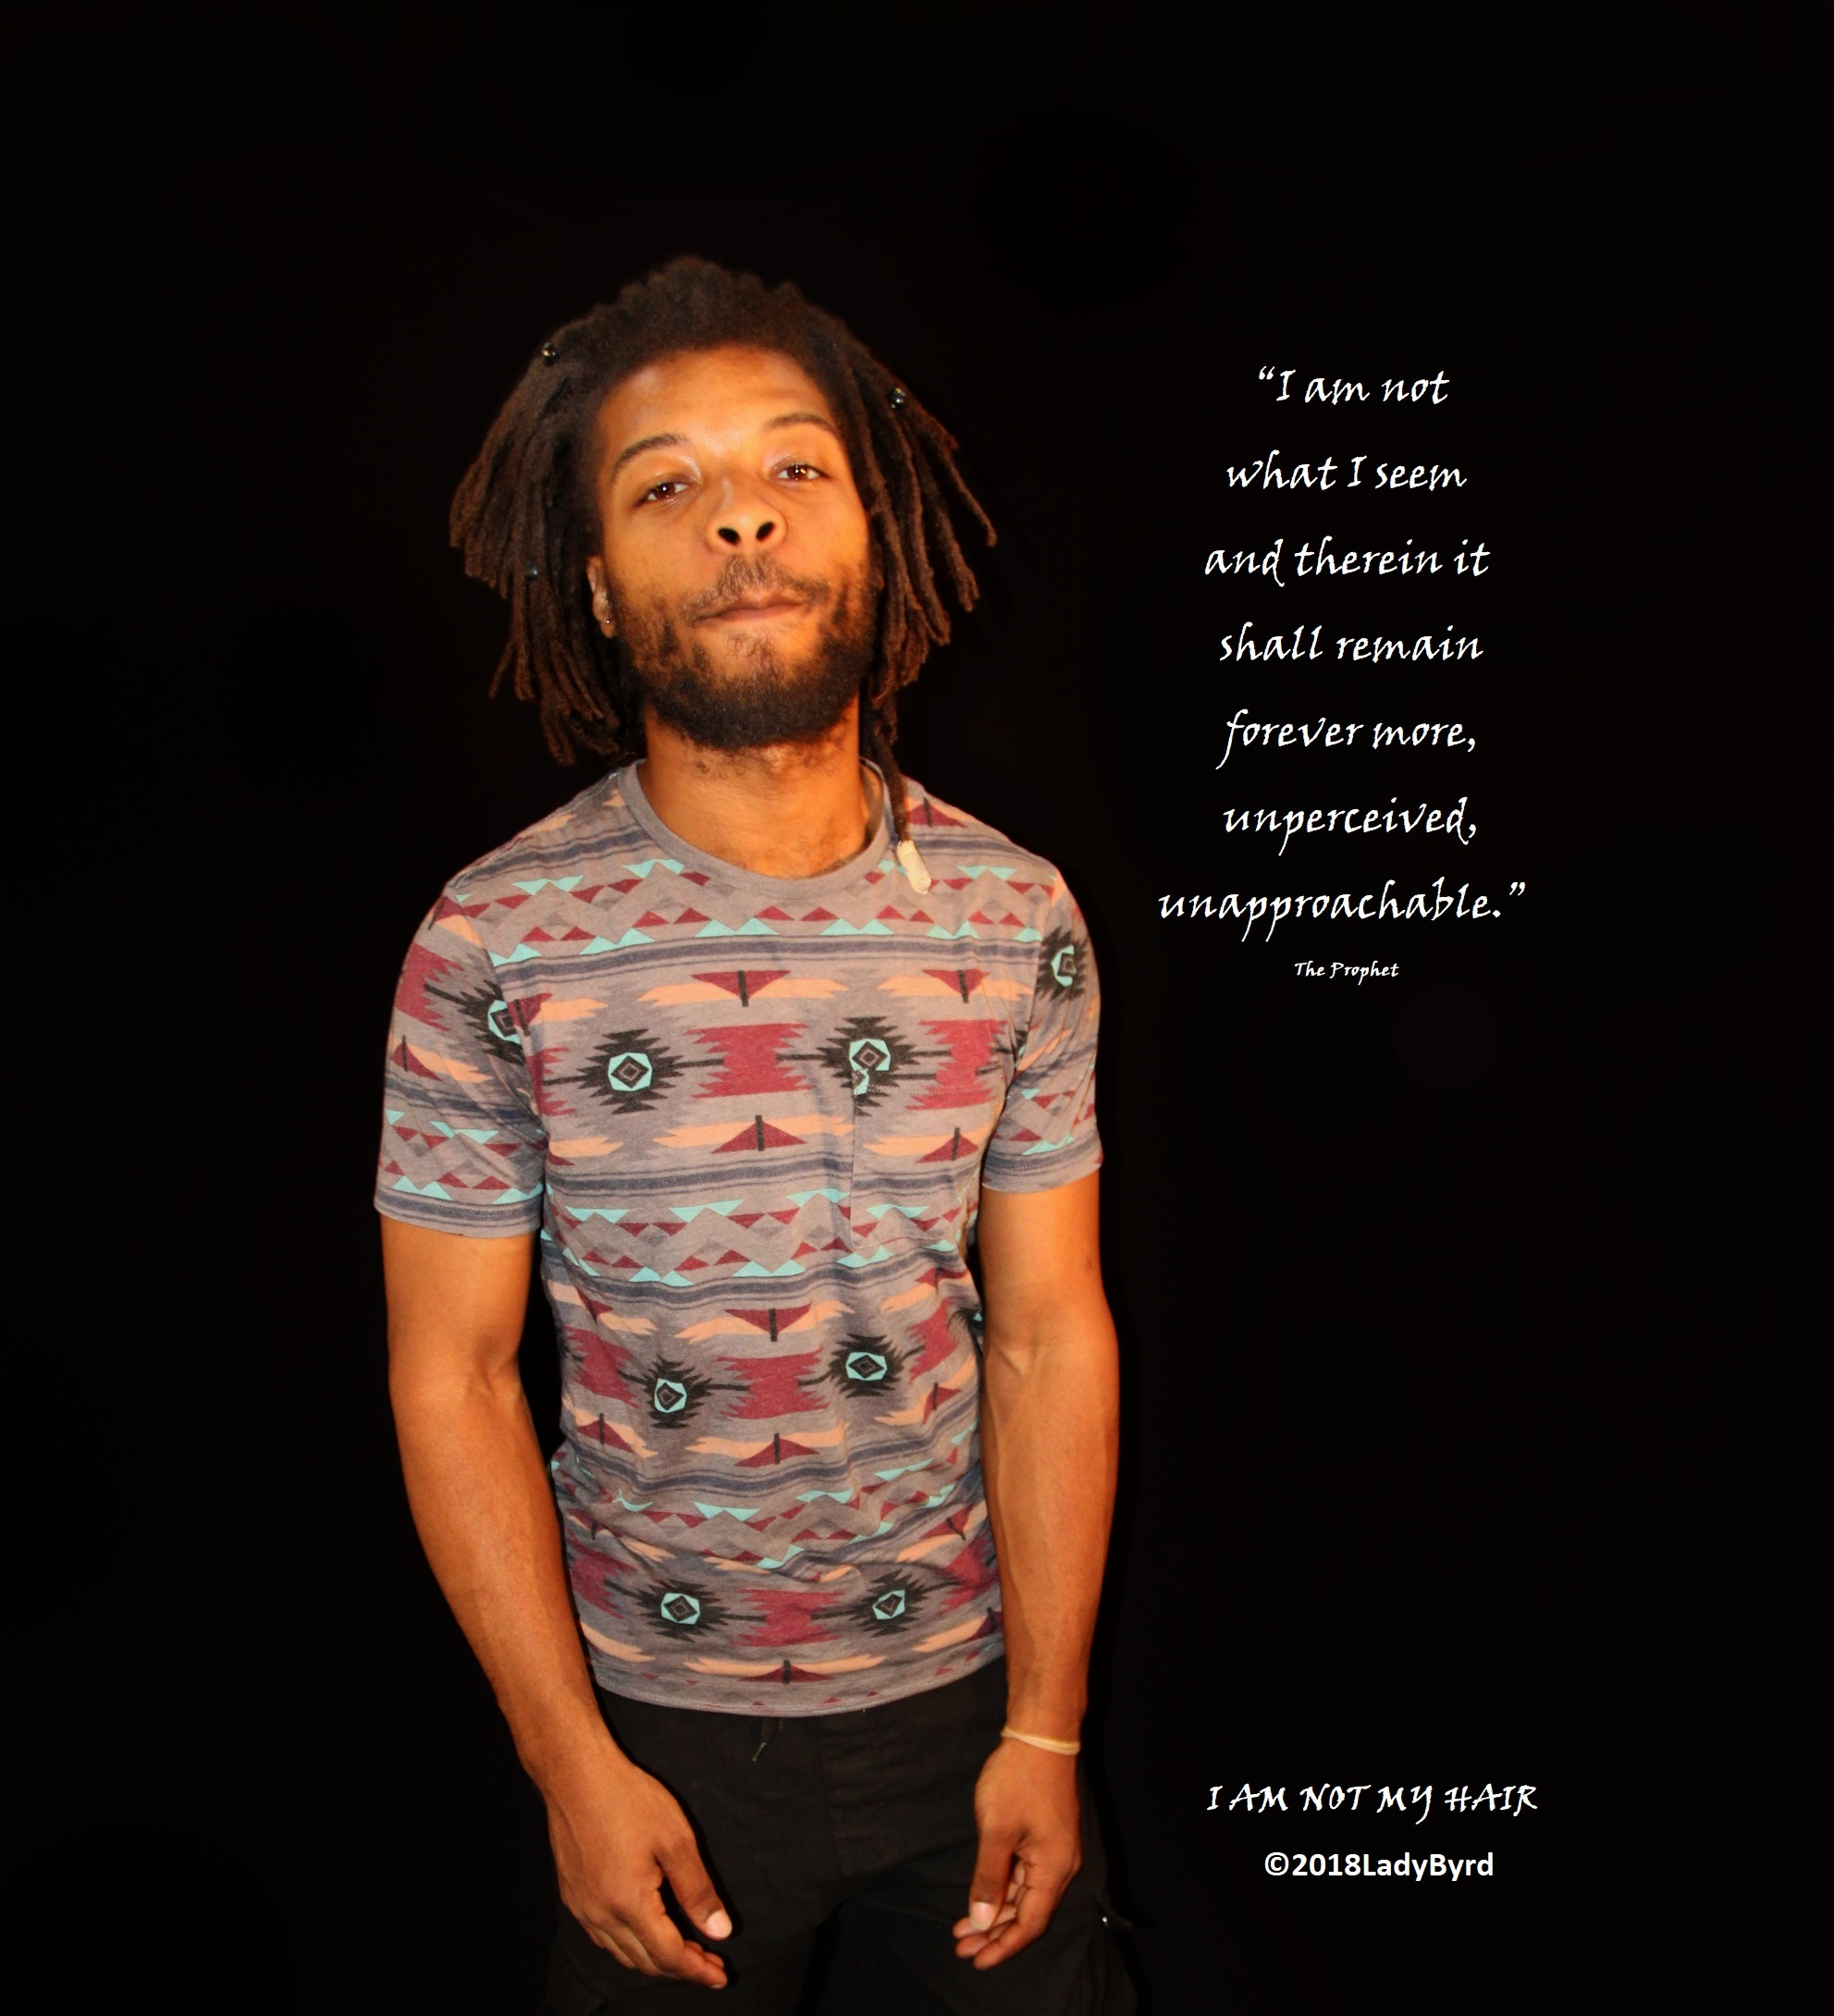 Perceptions part of the I AM NOT MY HAIR collection